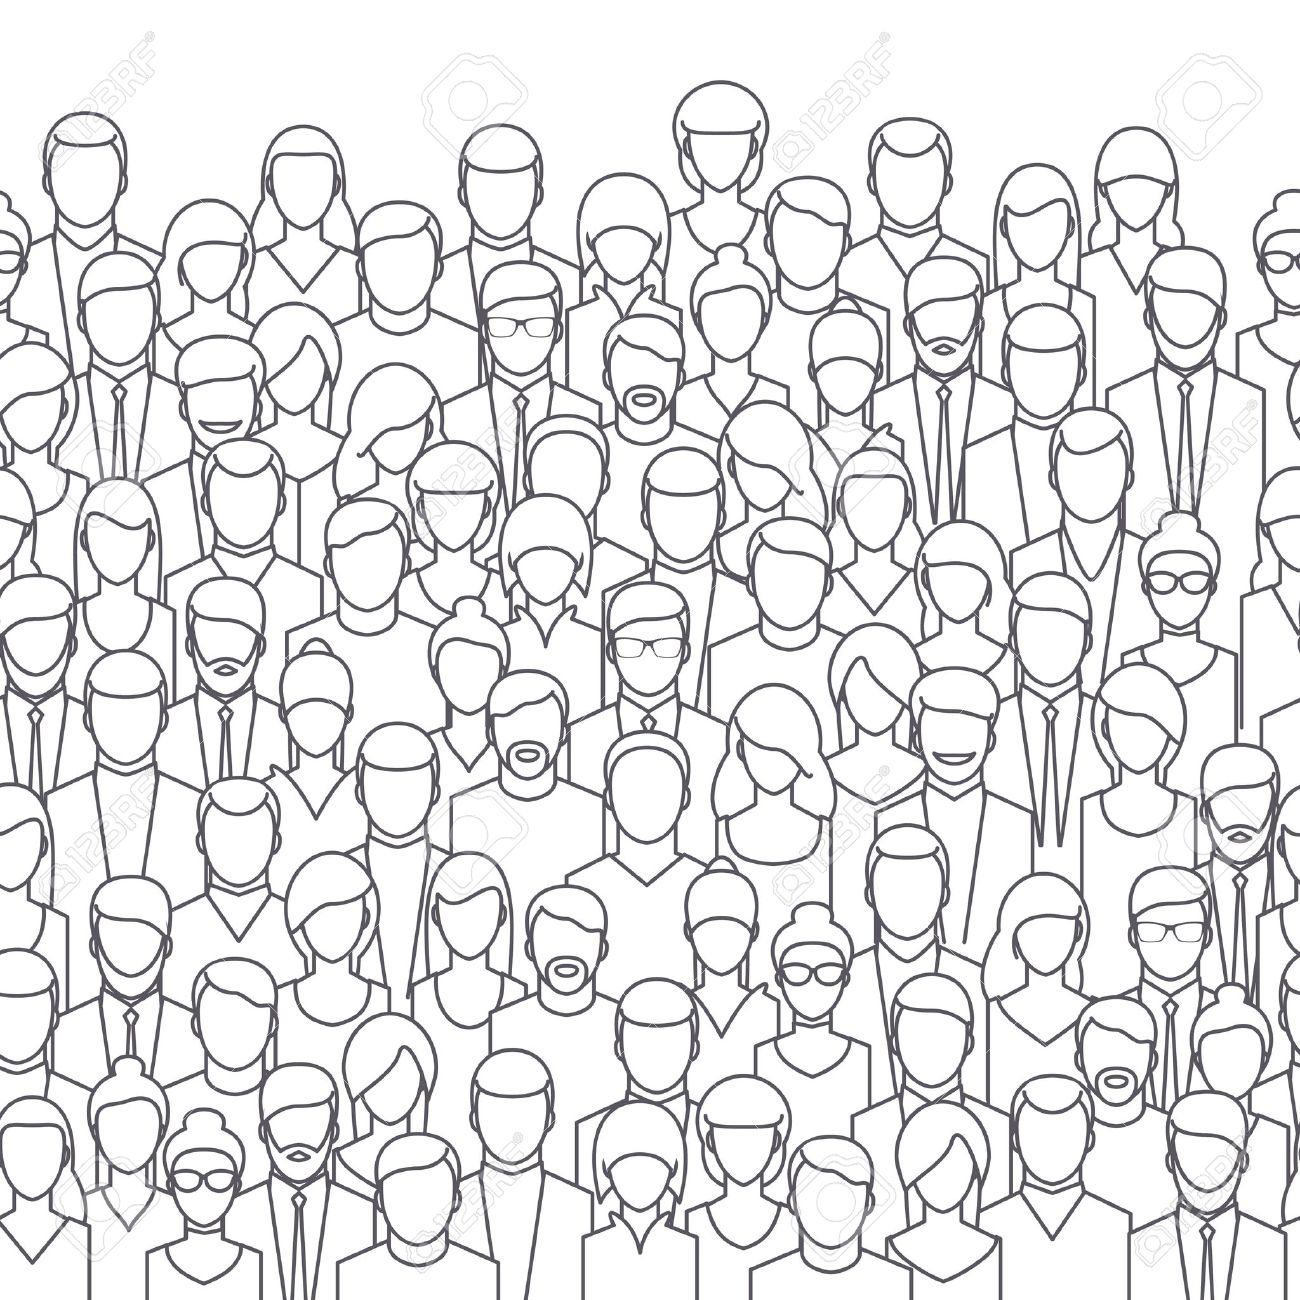 The crowd of abstract people, line style. Flat design, vector illustration. - 55308784